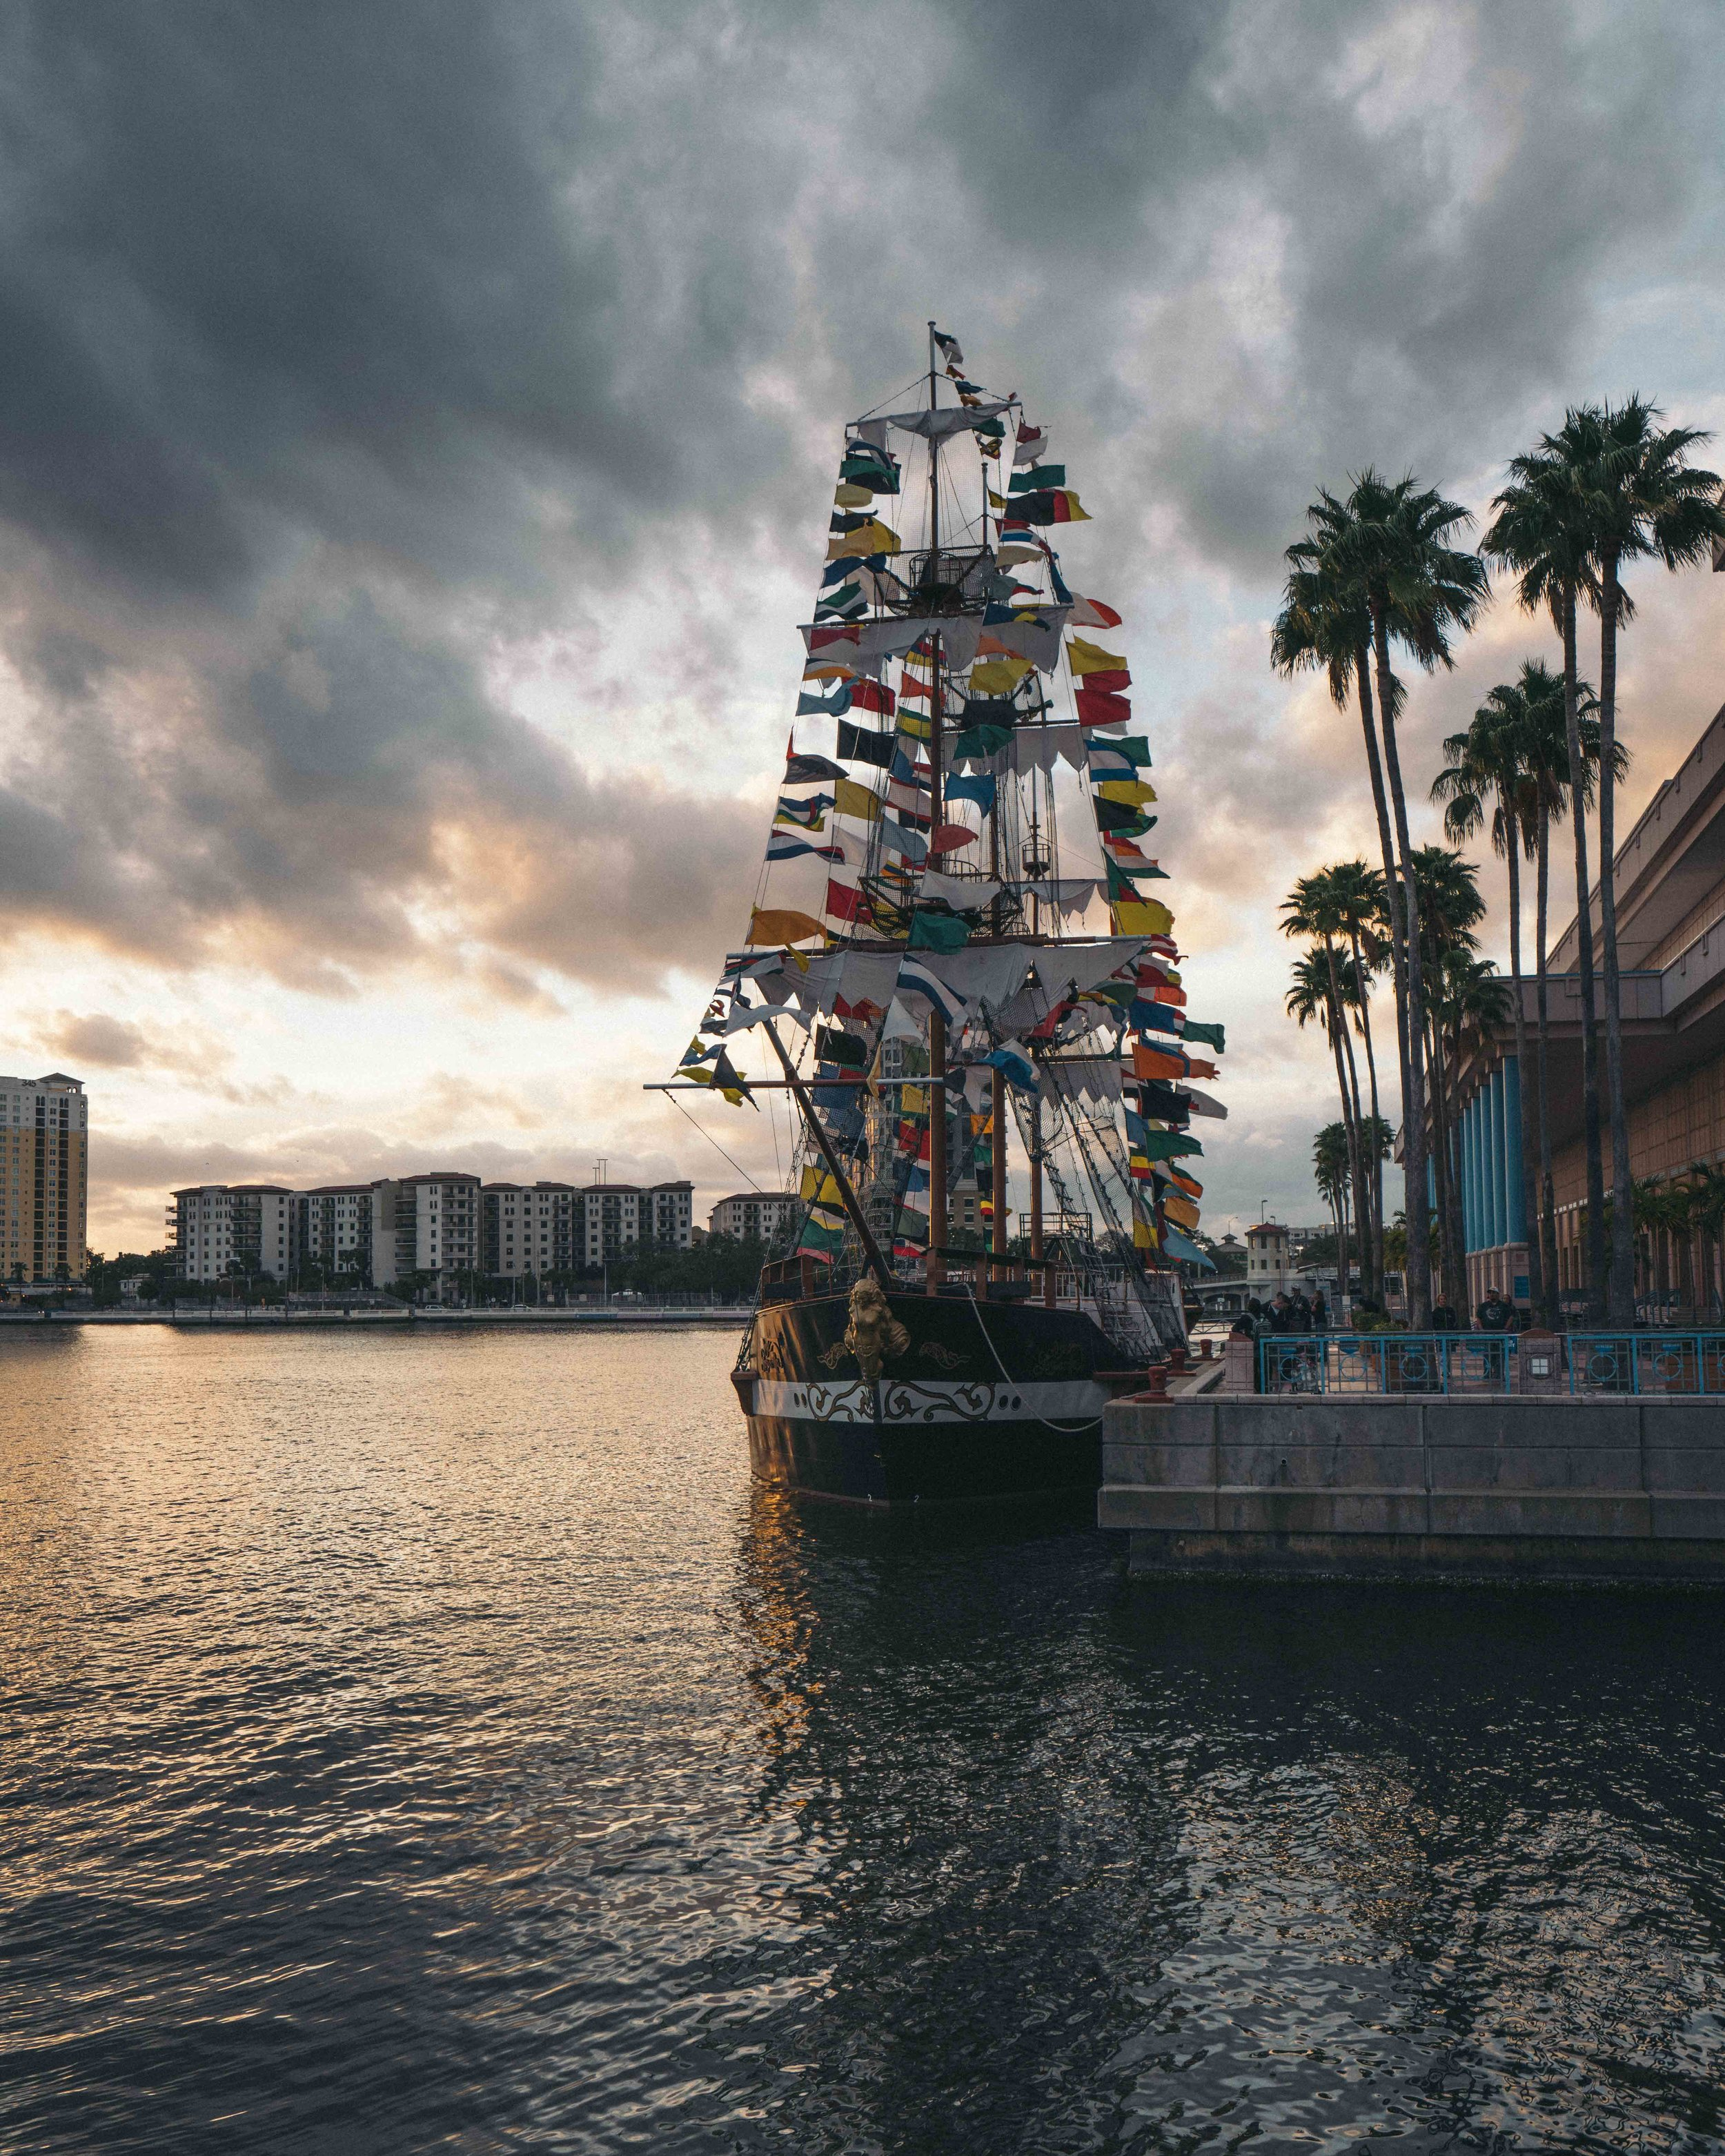 Docked pirate ship signals an end to this years Gasparilla festival.